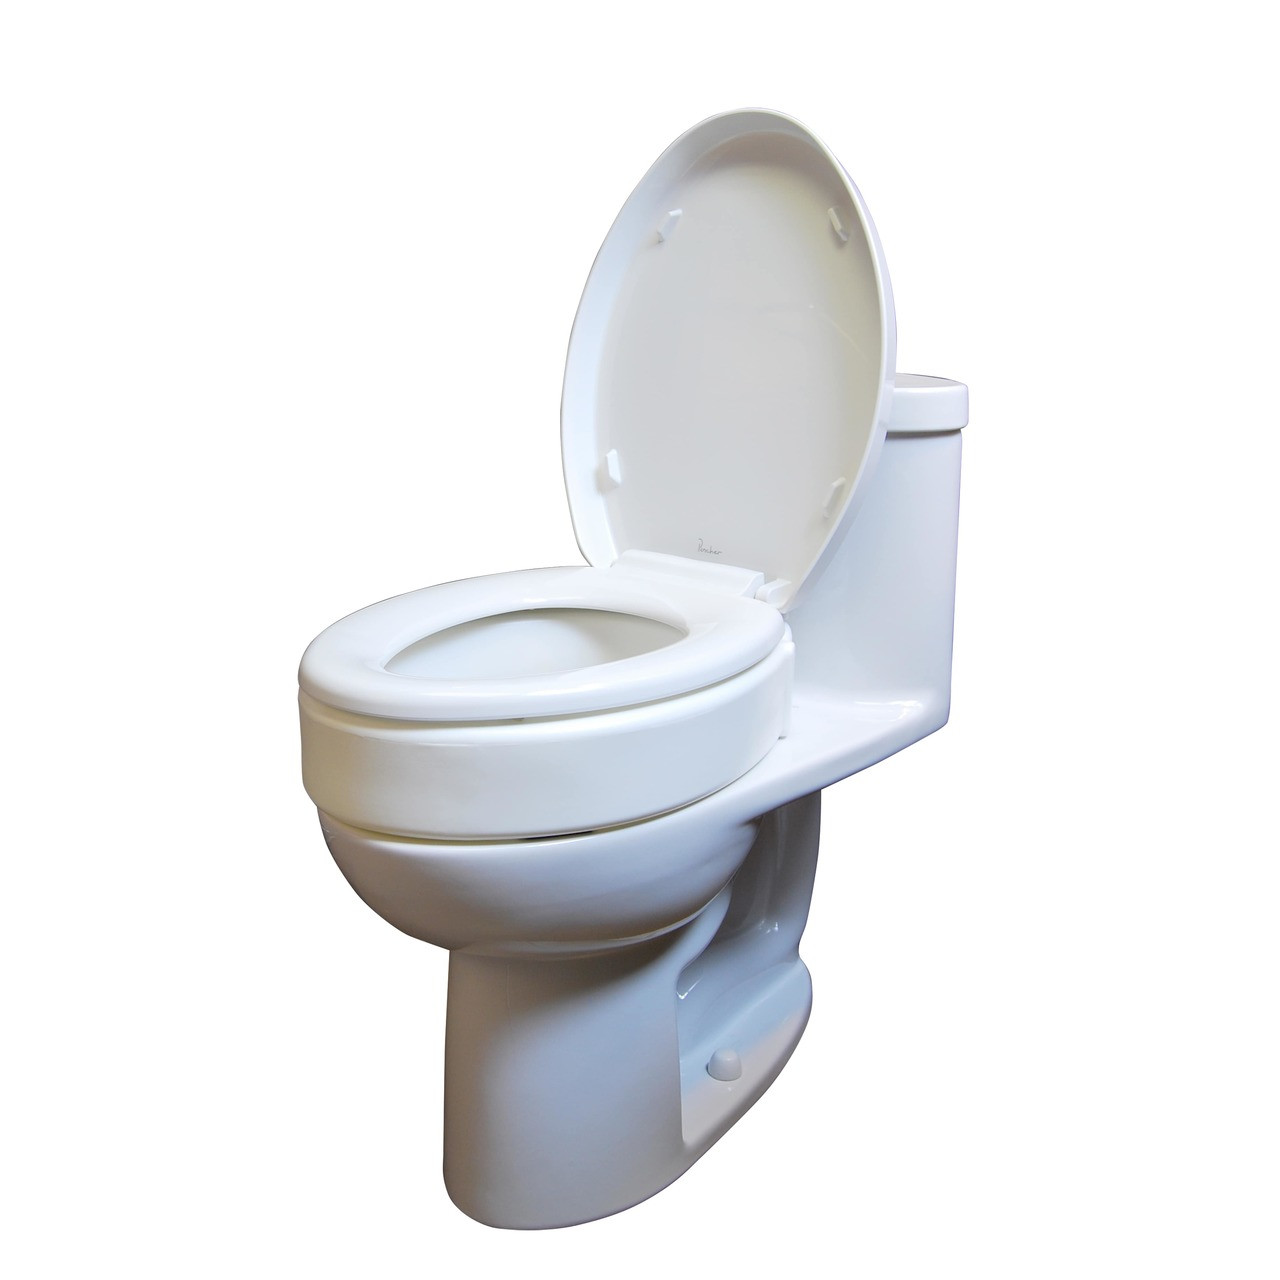 Fine Drive Medical Toilet Seat Riser Caraccident5 Cool Chair Designs And Ideas Caraccident5Info